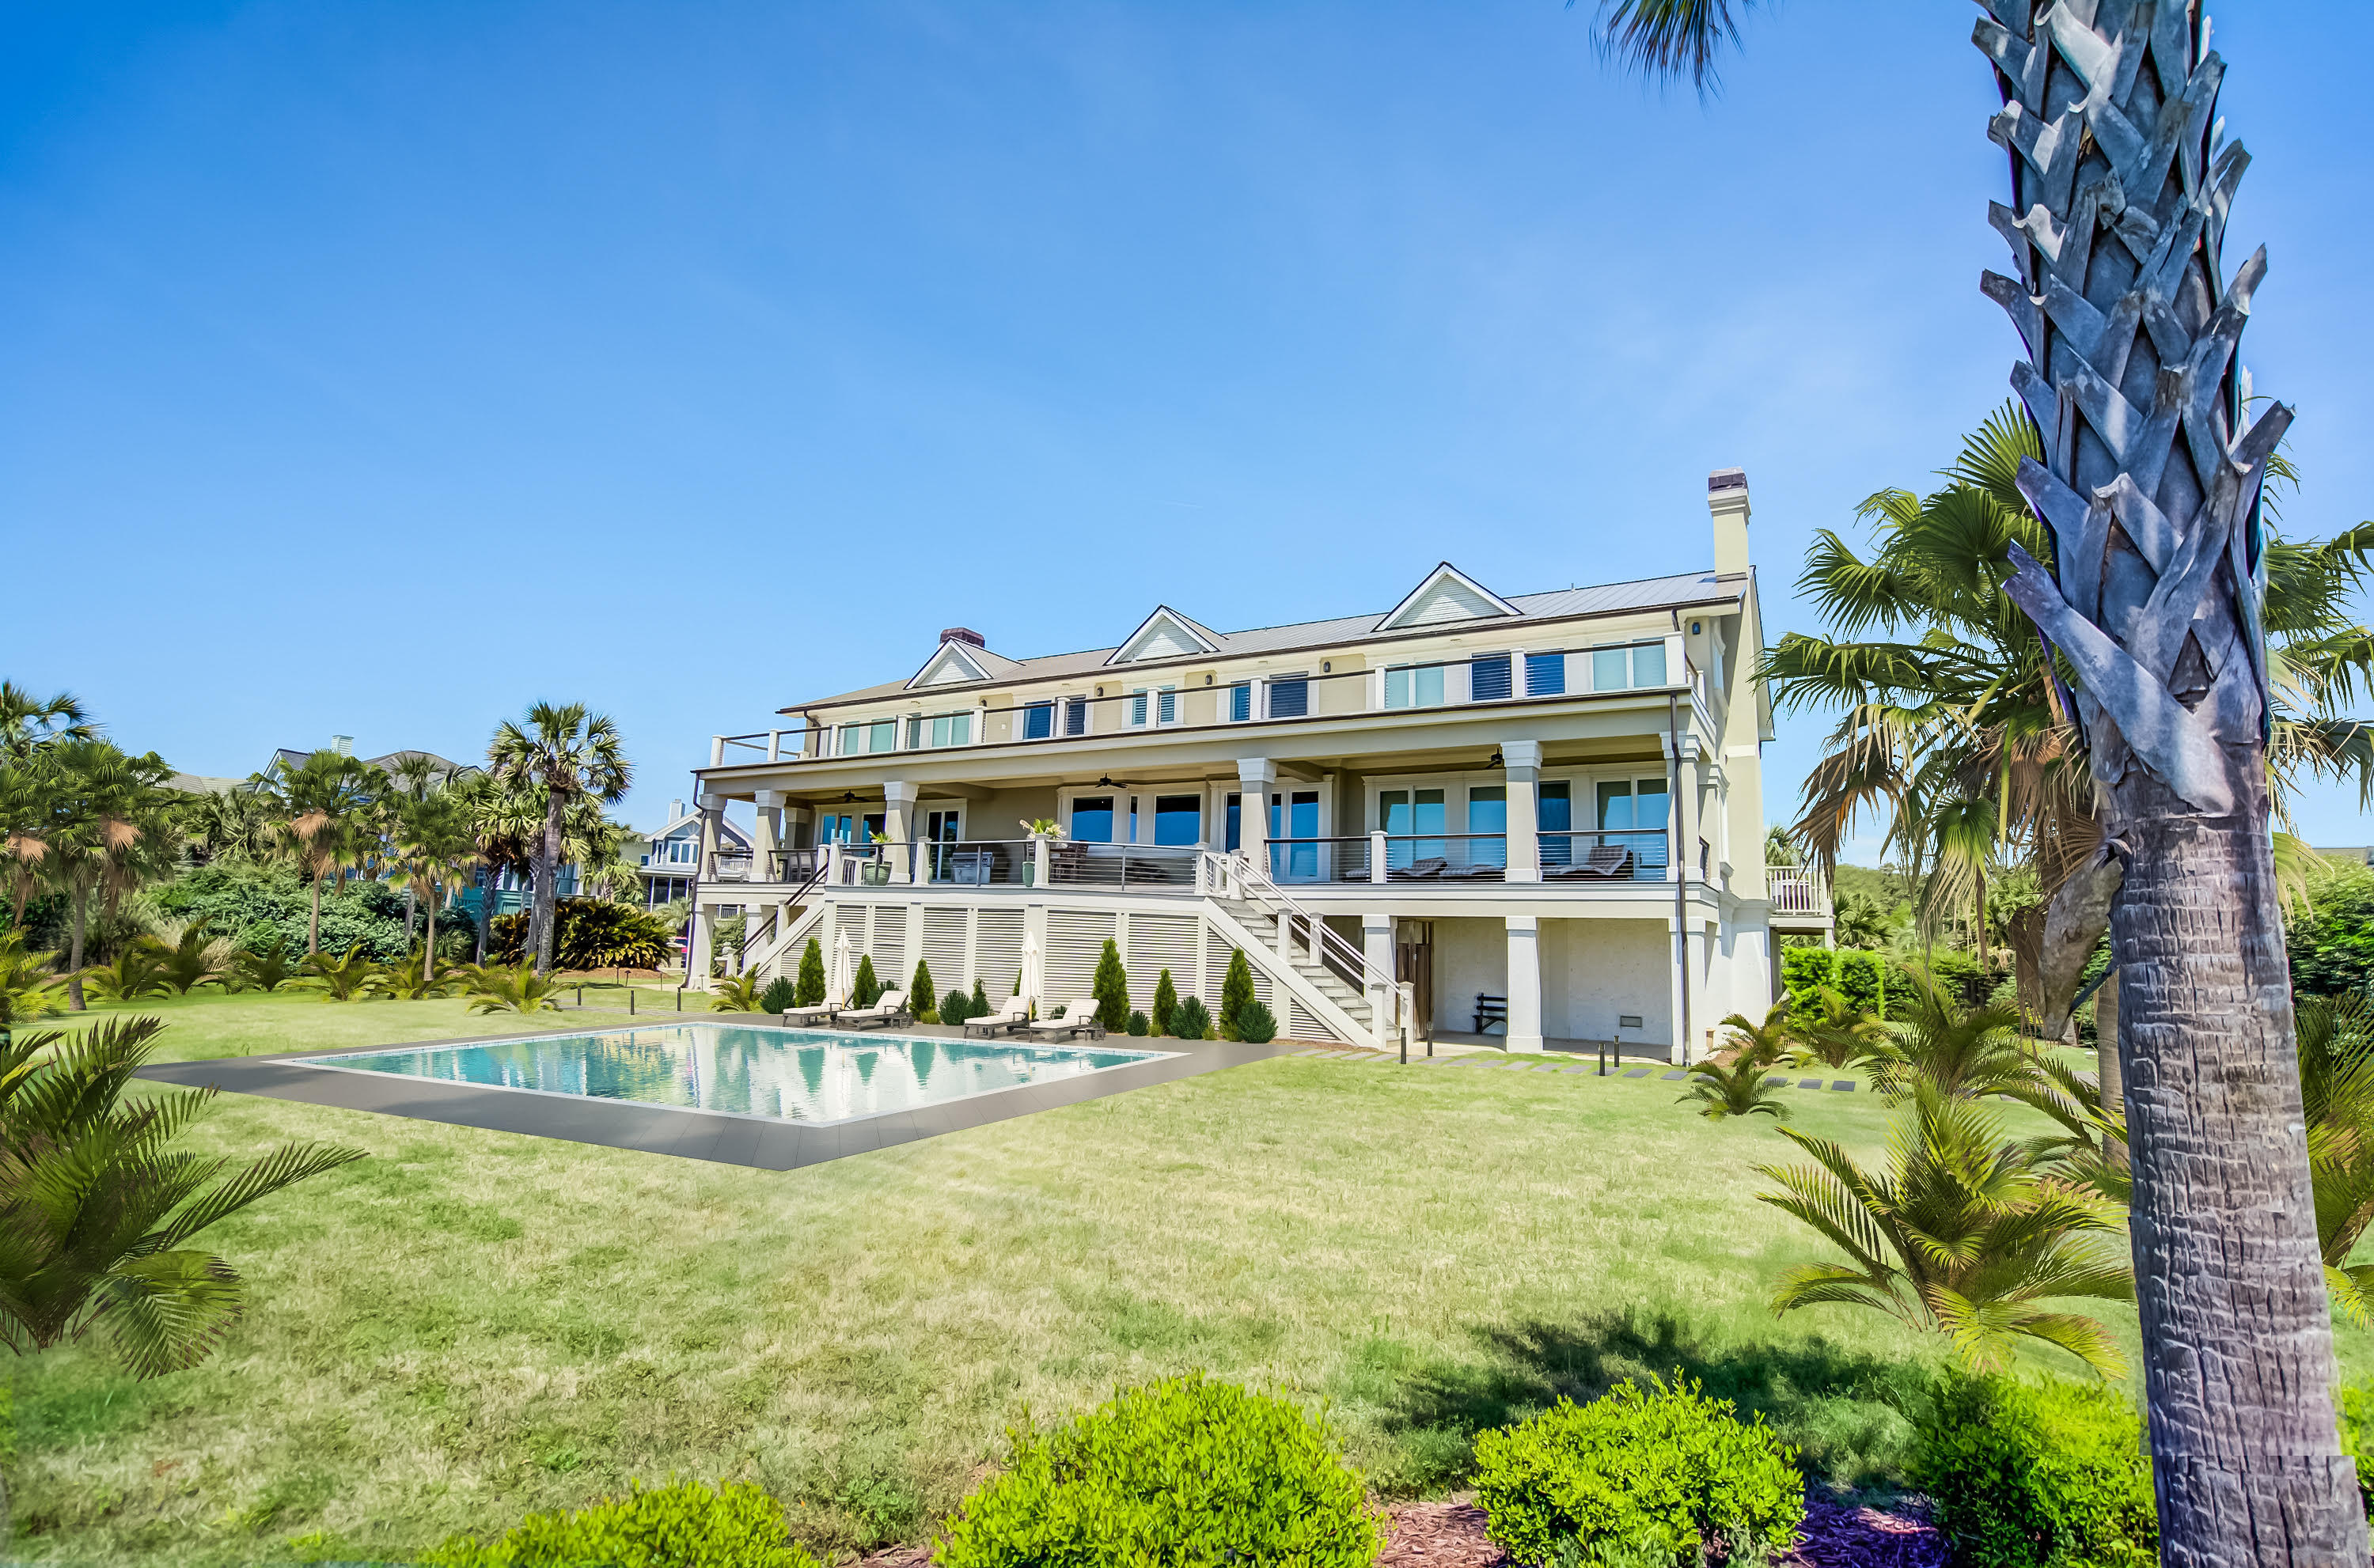 Isle of Palms Homes For Sale - 2 50th, Isle of Palms, SC - 11